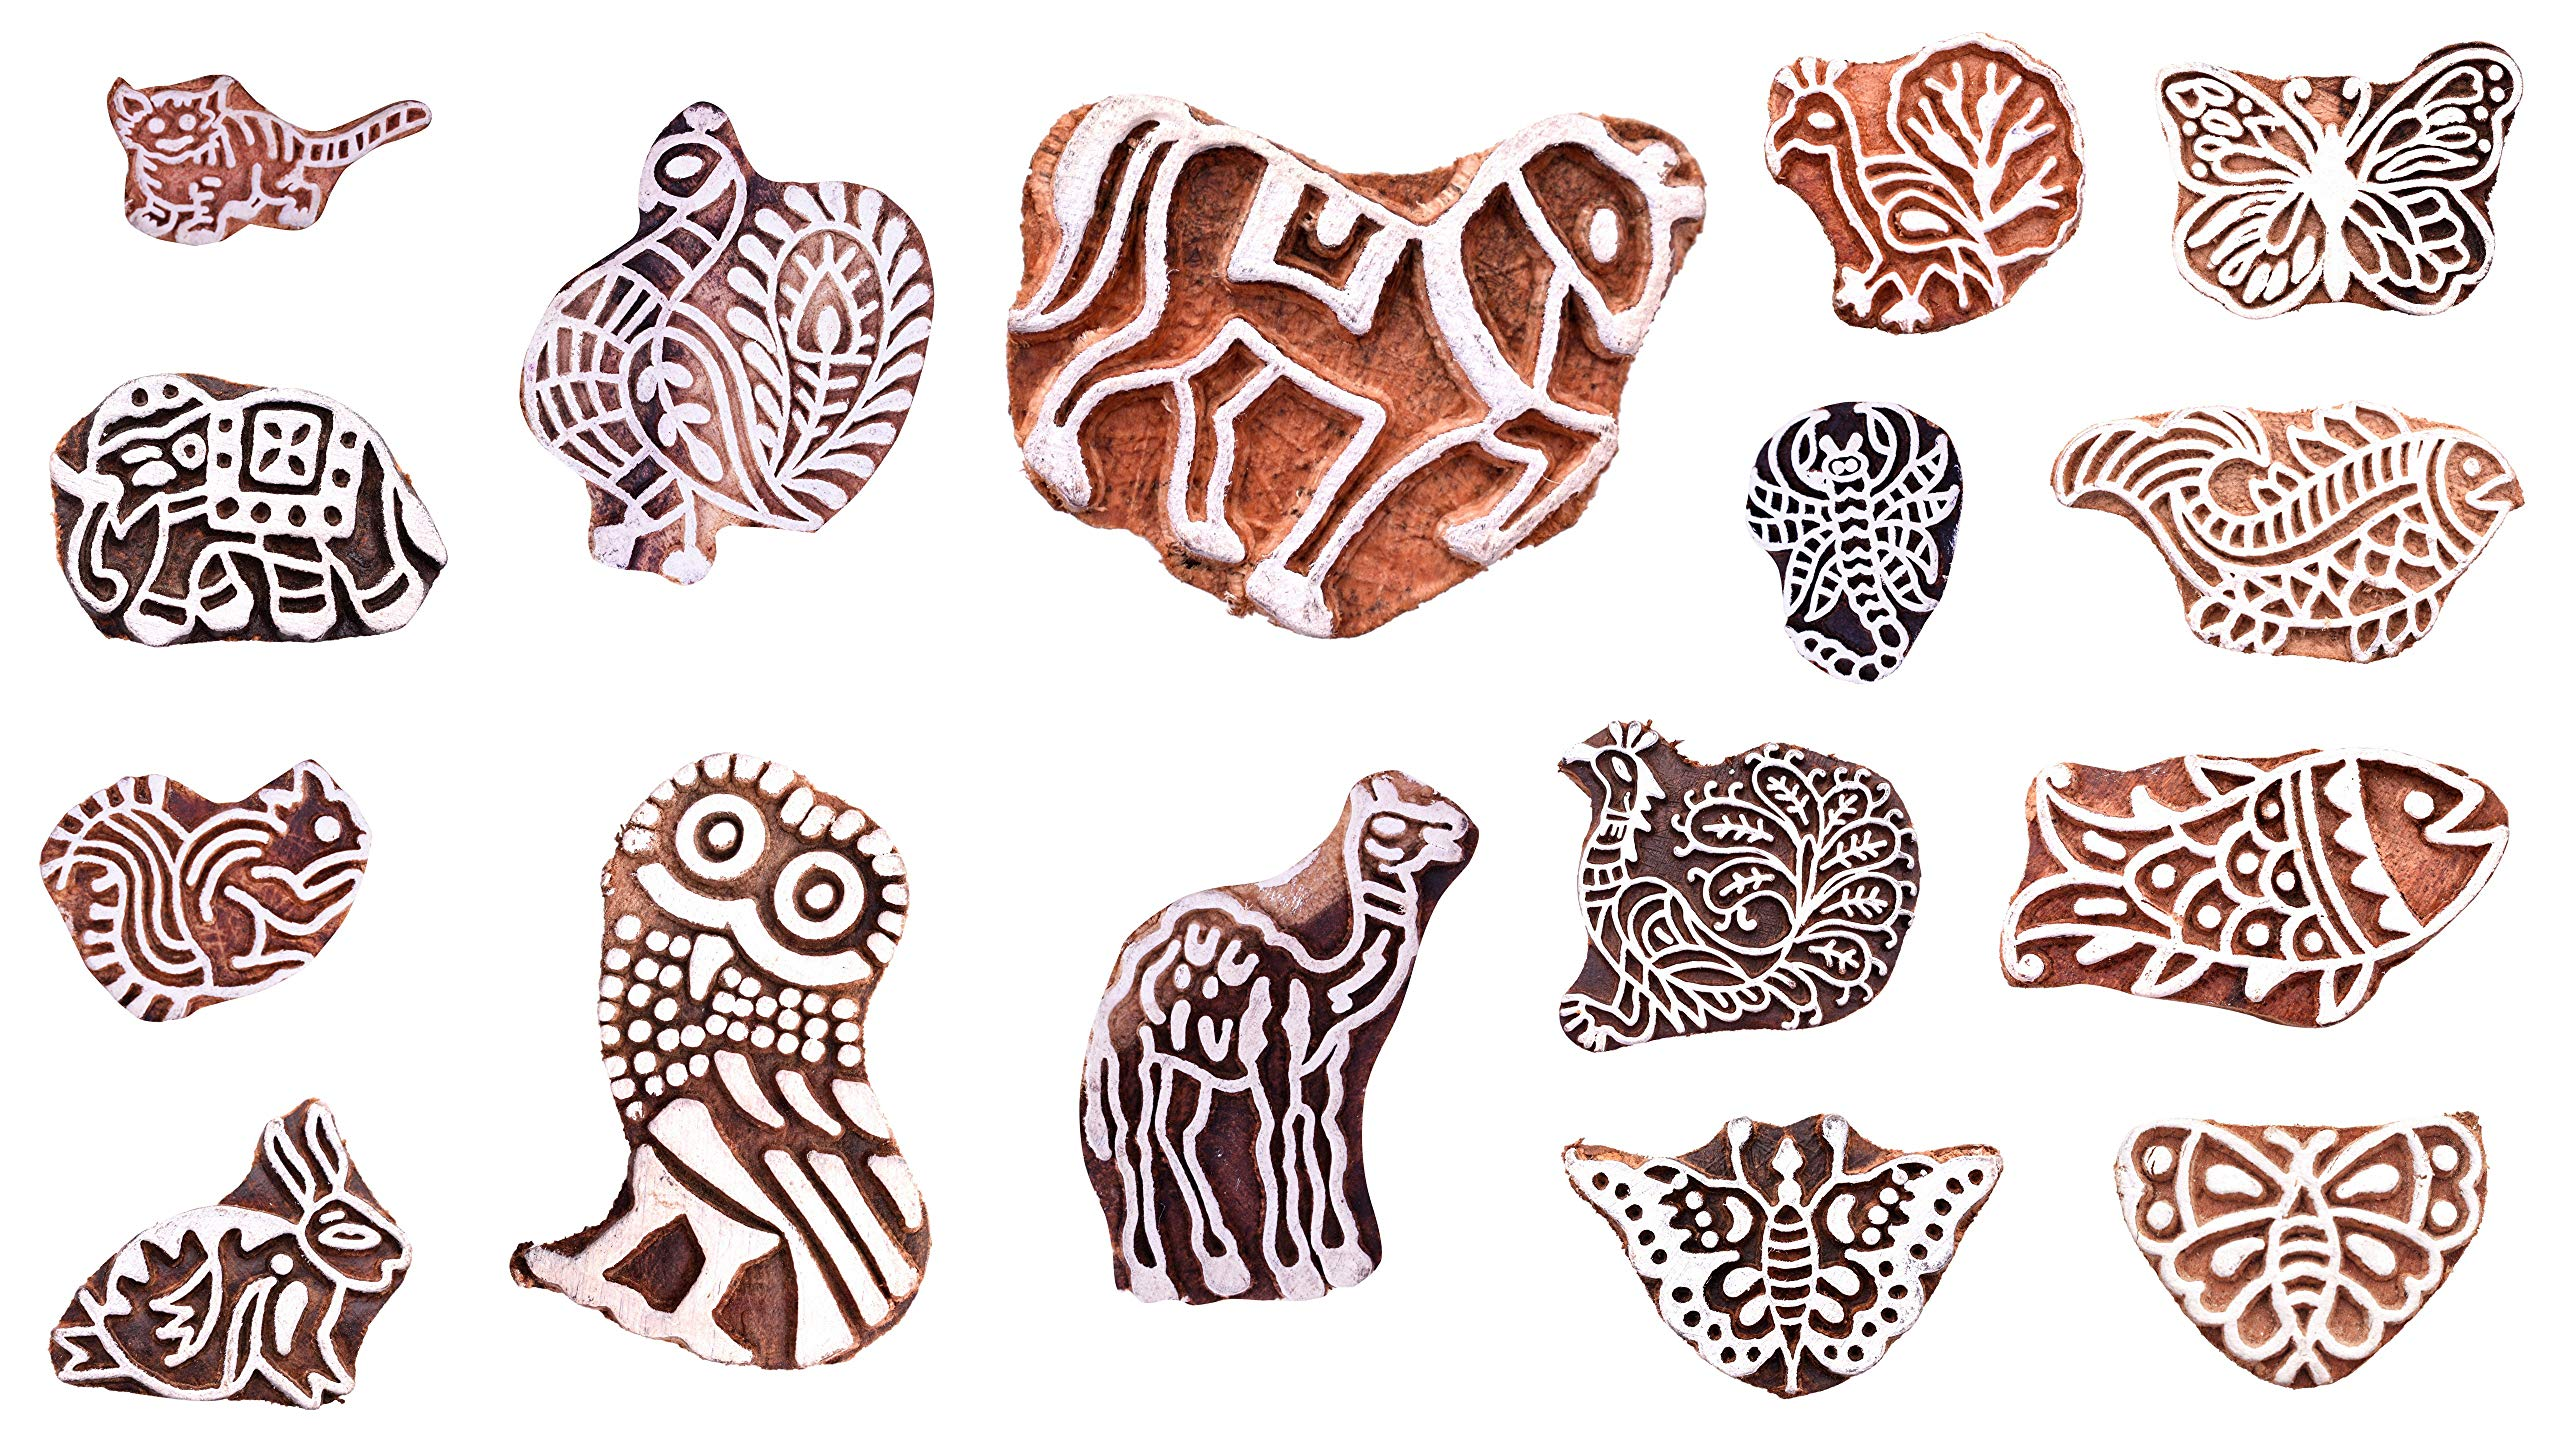 Handicraft-Palace Wooden Block Stamps Handcarved Designer Craft Printing Pattern for Saree Border Henna Textile Printing Scrapbooking Pottery Crafts Wall Painting Indian (5 pc Set)